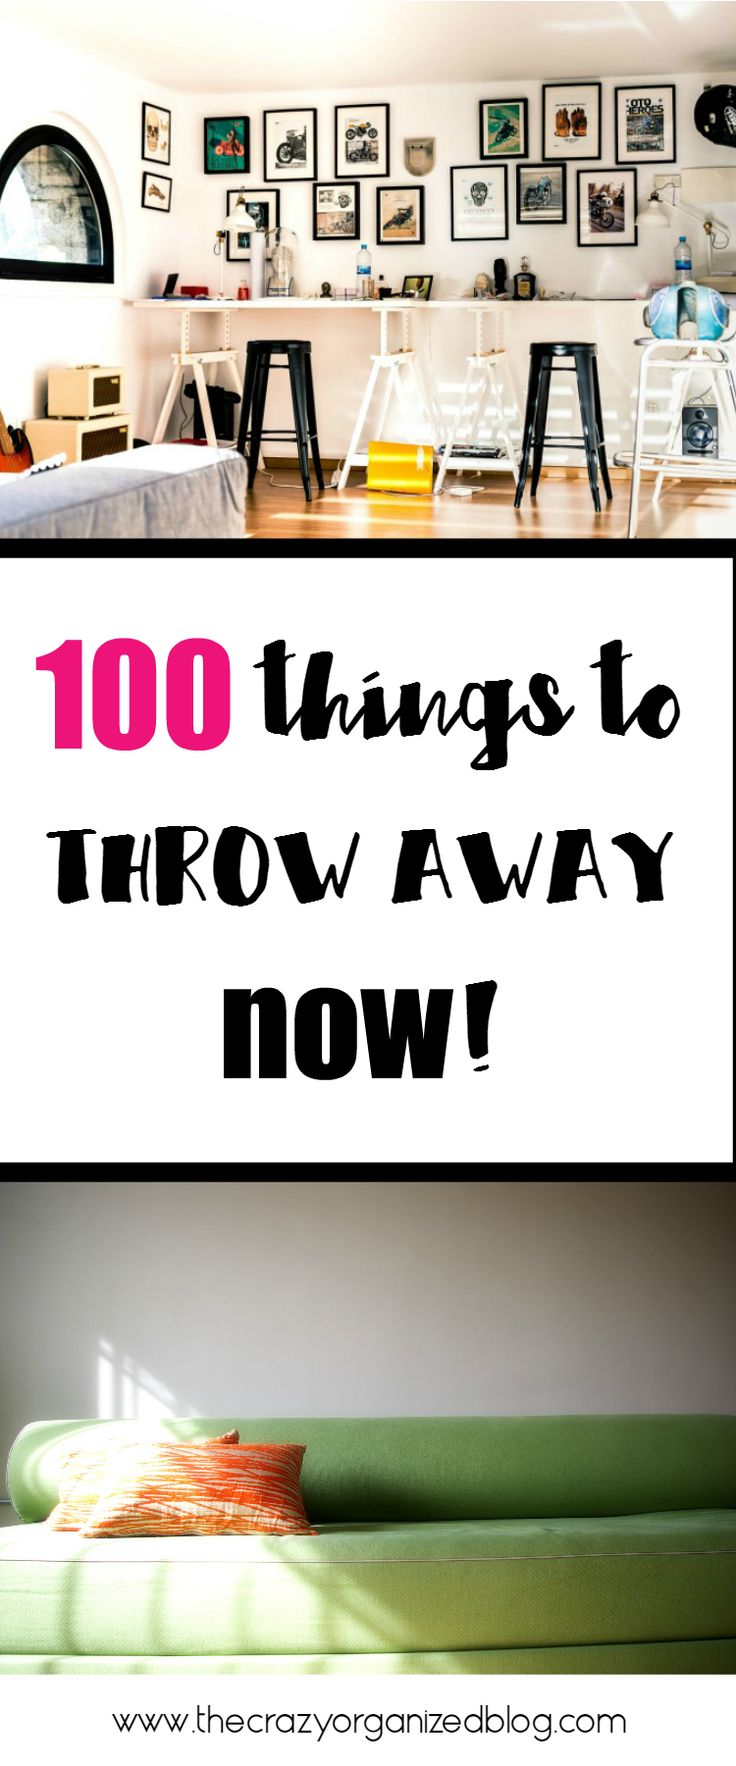 100 things that you can find in your home to throw away now! You'll never miss them!